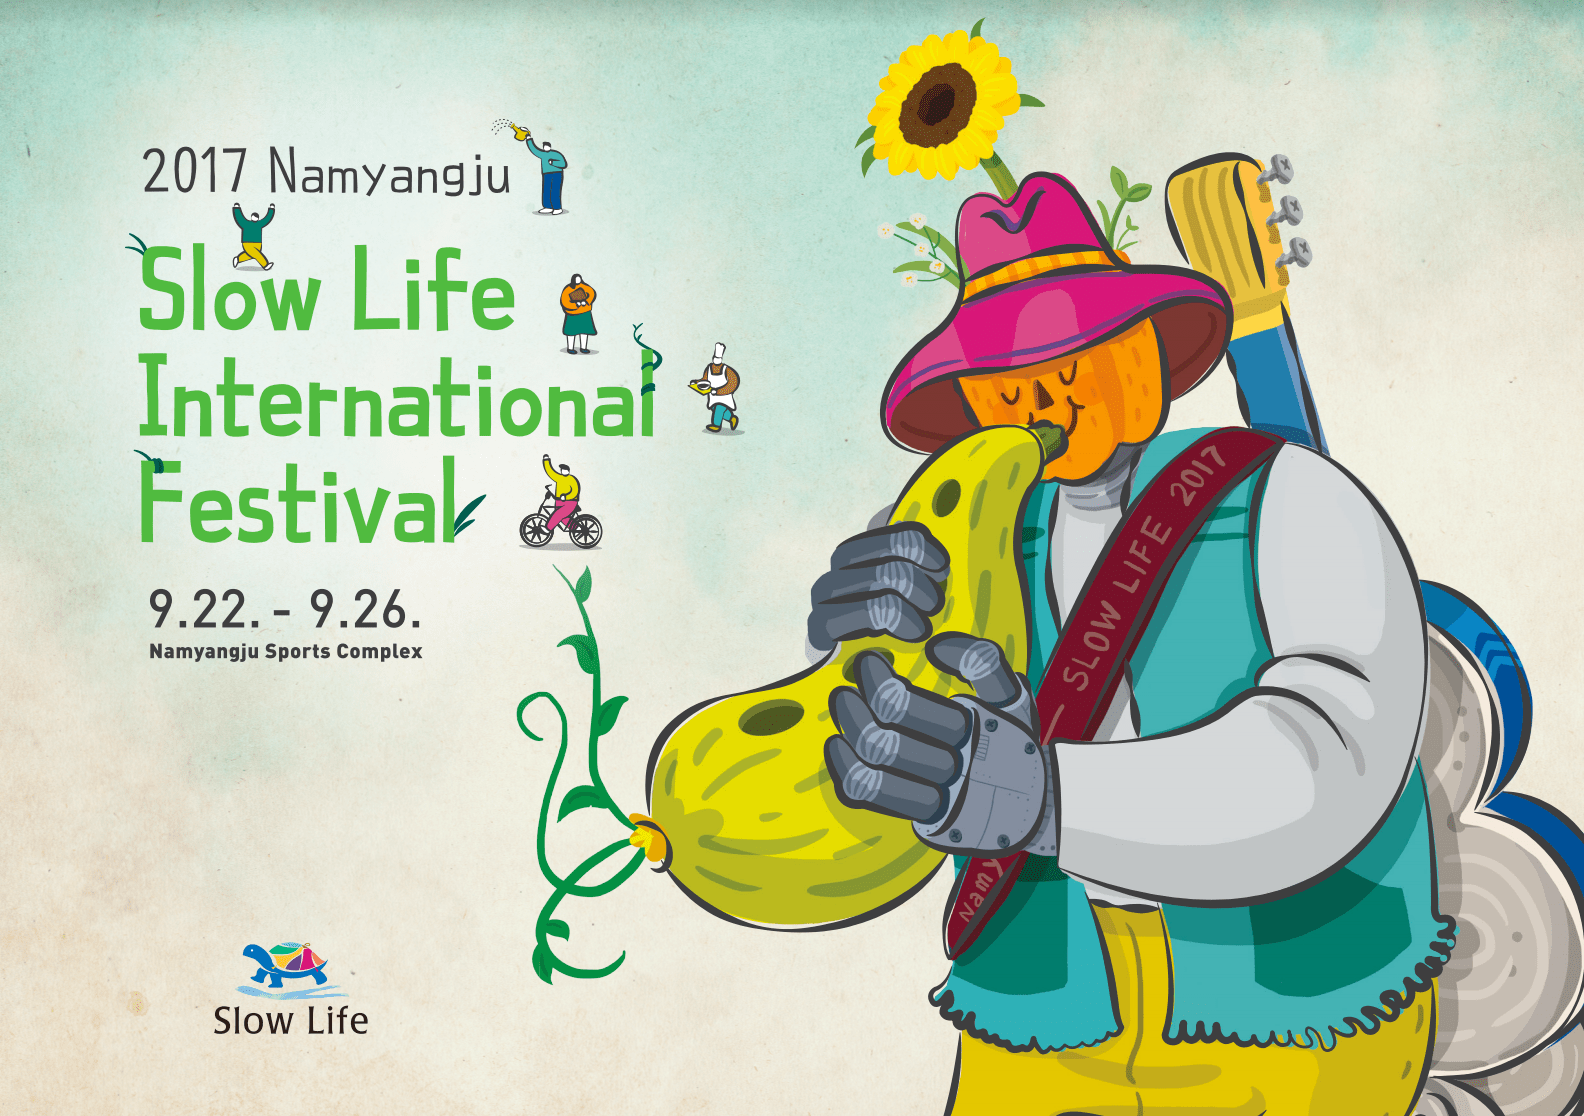 The Korean Slow Life Festival